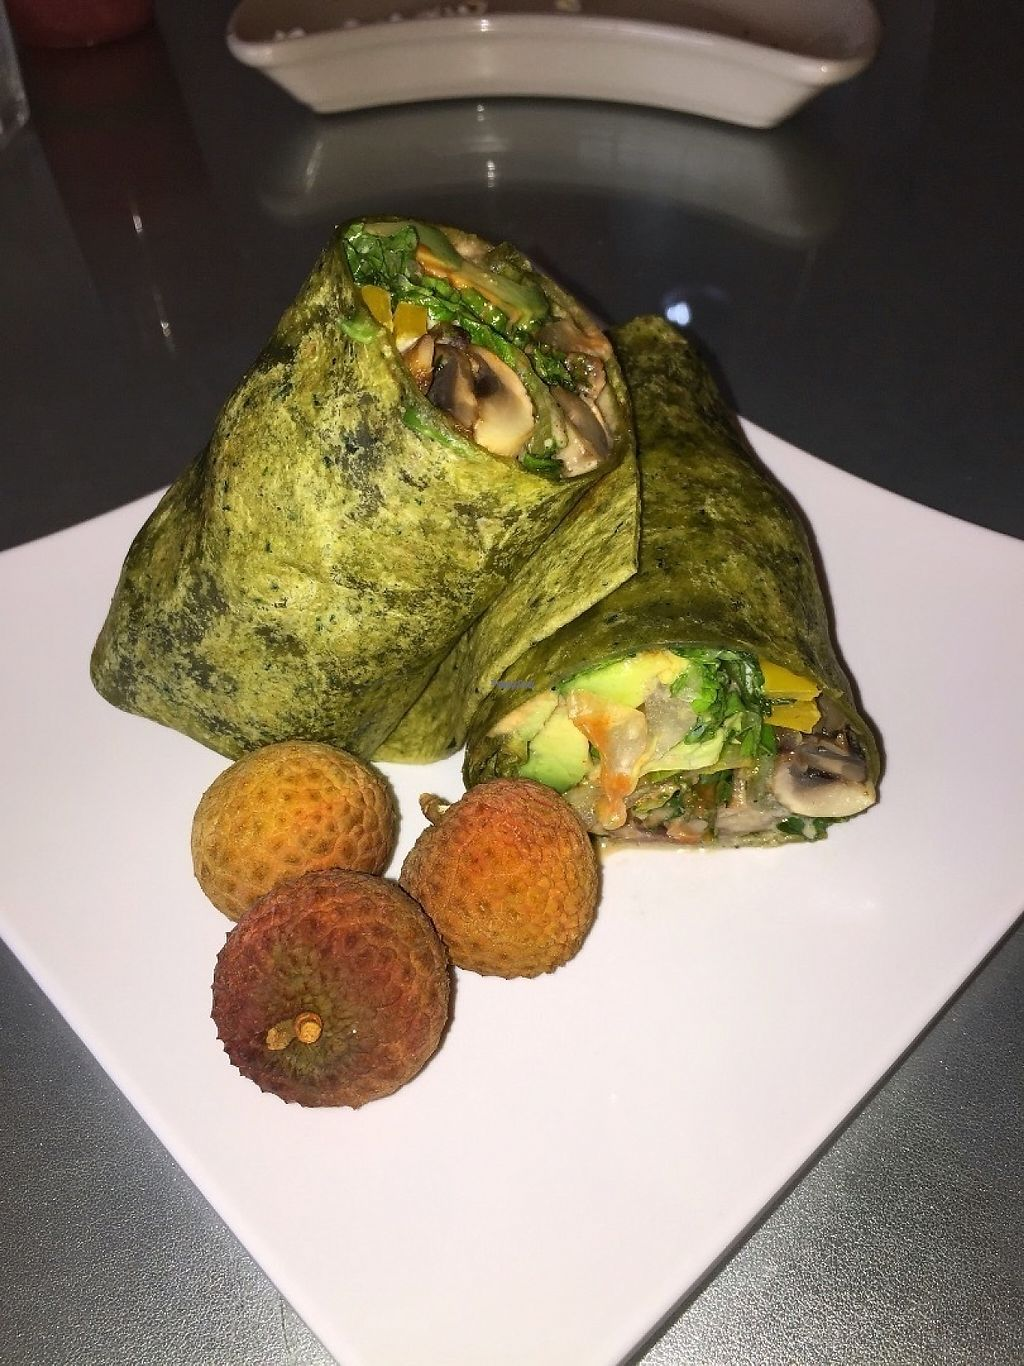 """Photo of Nokturne  by <a href=""""/members/profile/PlantPrincesa"""">PlantPrincesa</a> <br/>Veggie burrito, not too bad I've had better though <br/> December 30, 2016  - <a href='/contact/abuse/image/67157/206247'>Report</a>"""